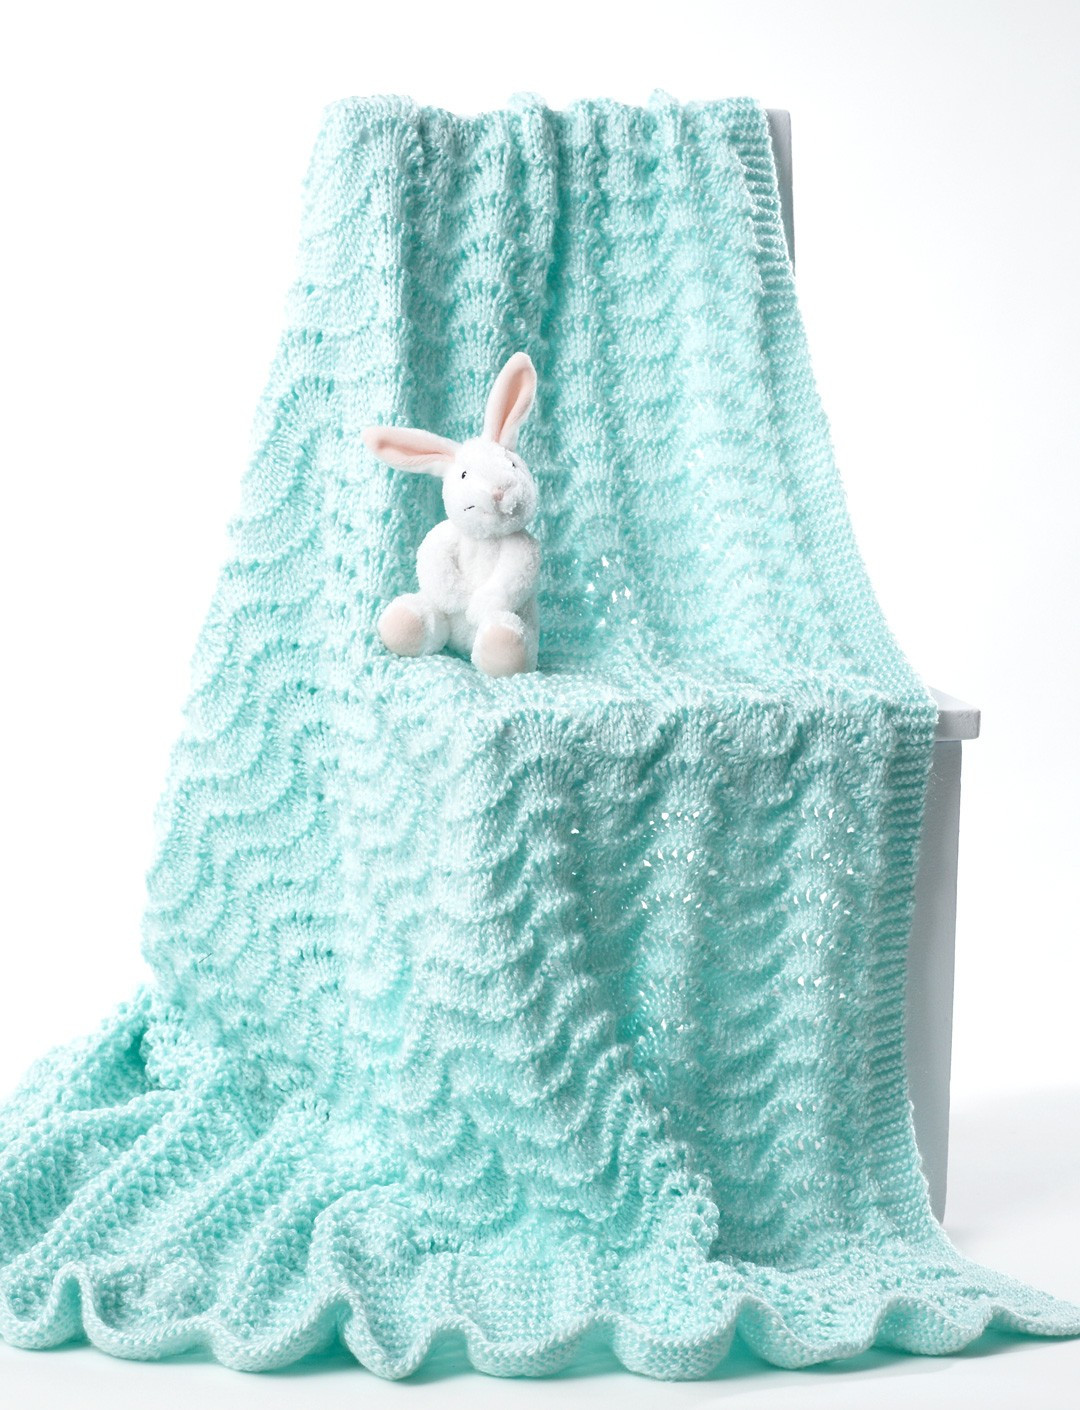 Baby Afghan Knitting Patterns New Easy Baby Blanket Knitting Patterns Of Superb 40 Images Baby Afghan Knitting Patterns